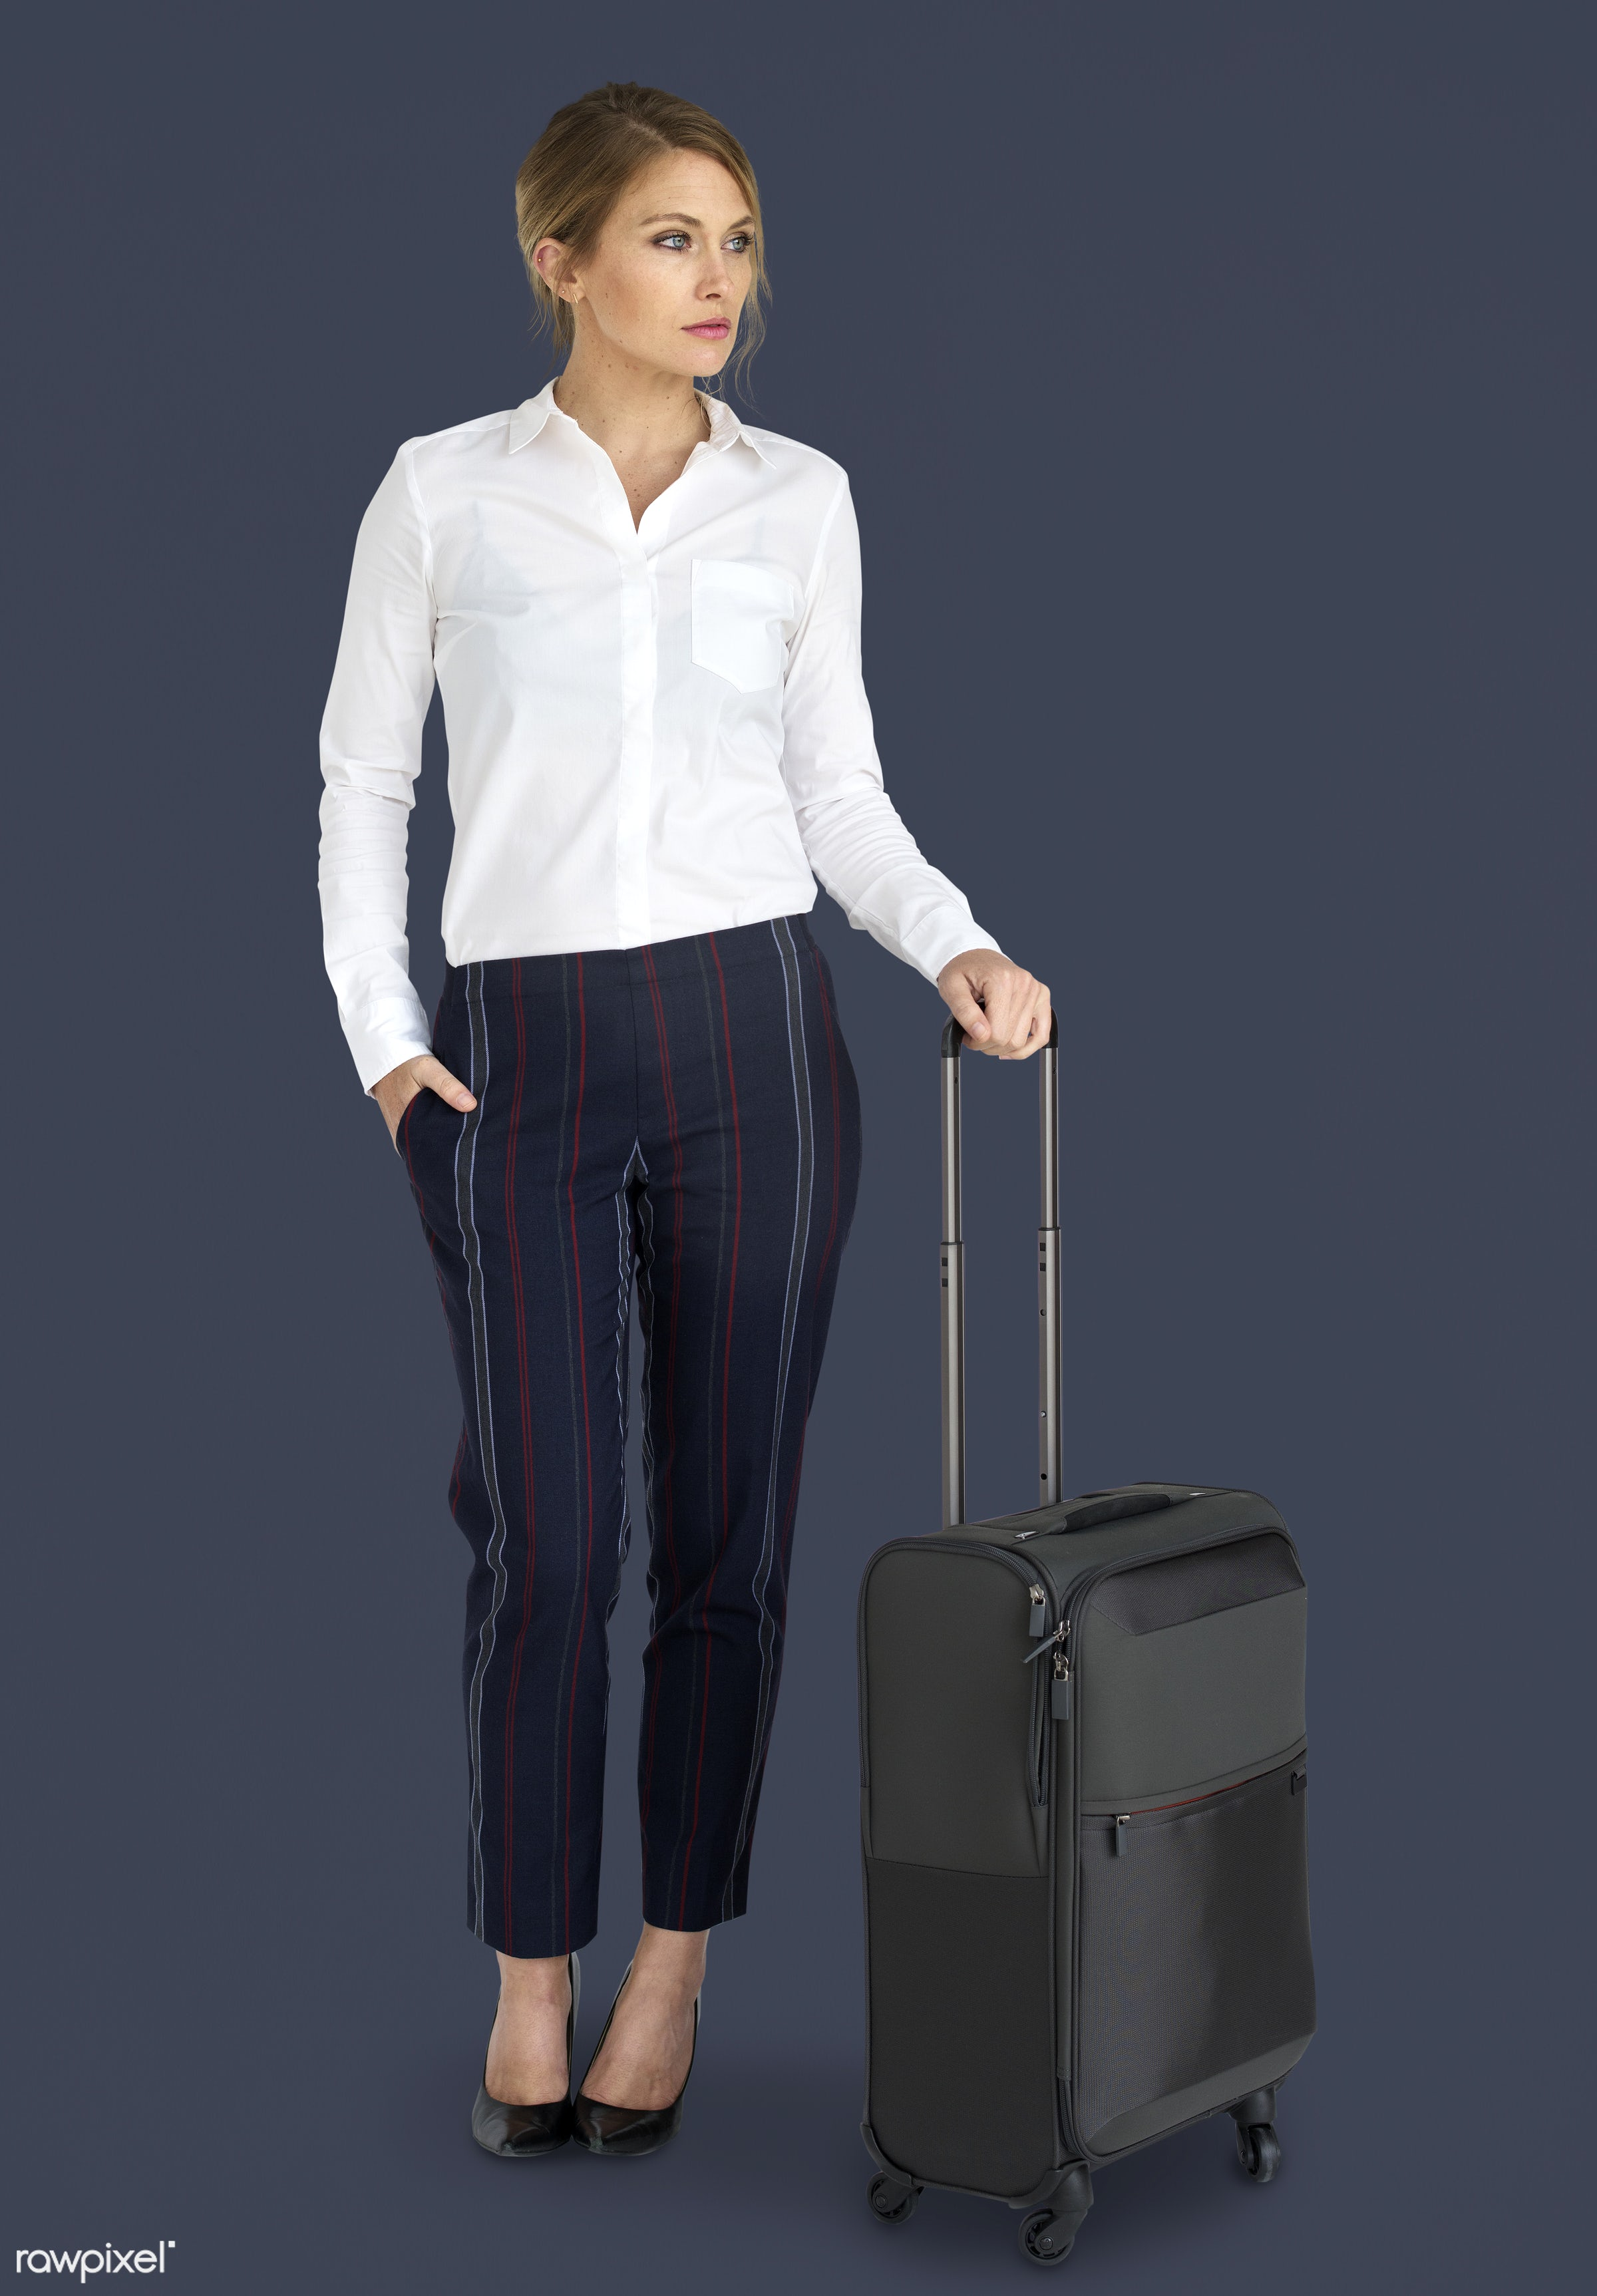 studio, face, person, travel, people, business, trip, man, isolated, suitcase, male, traveler, businesswoman, business...